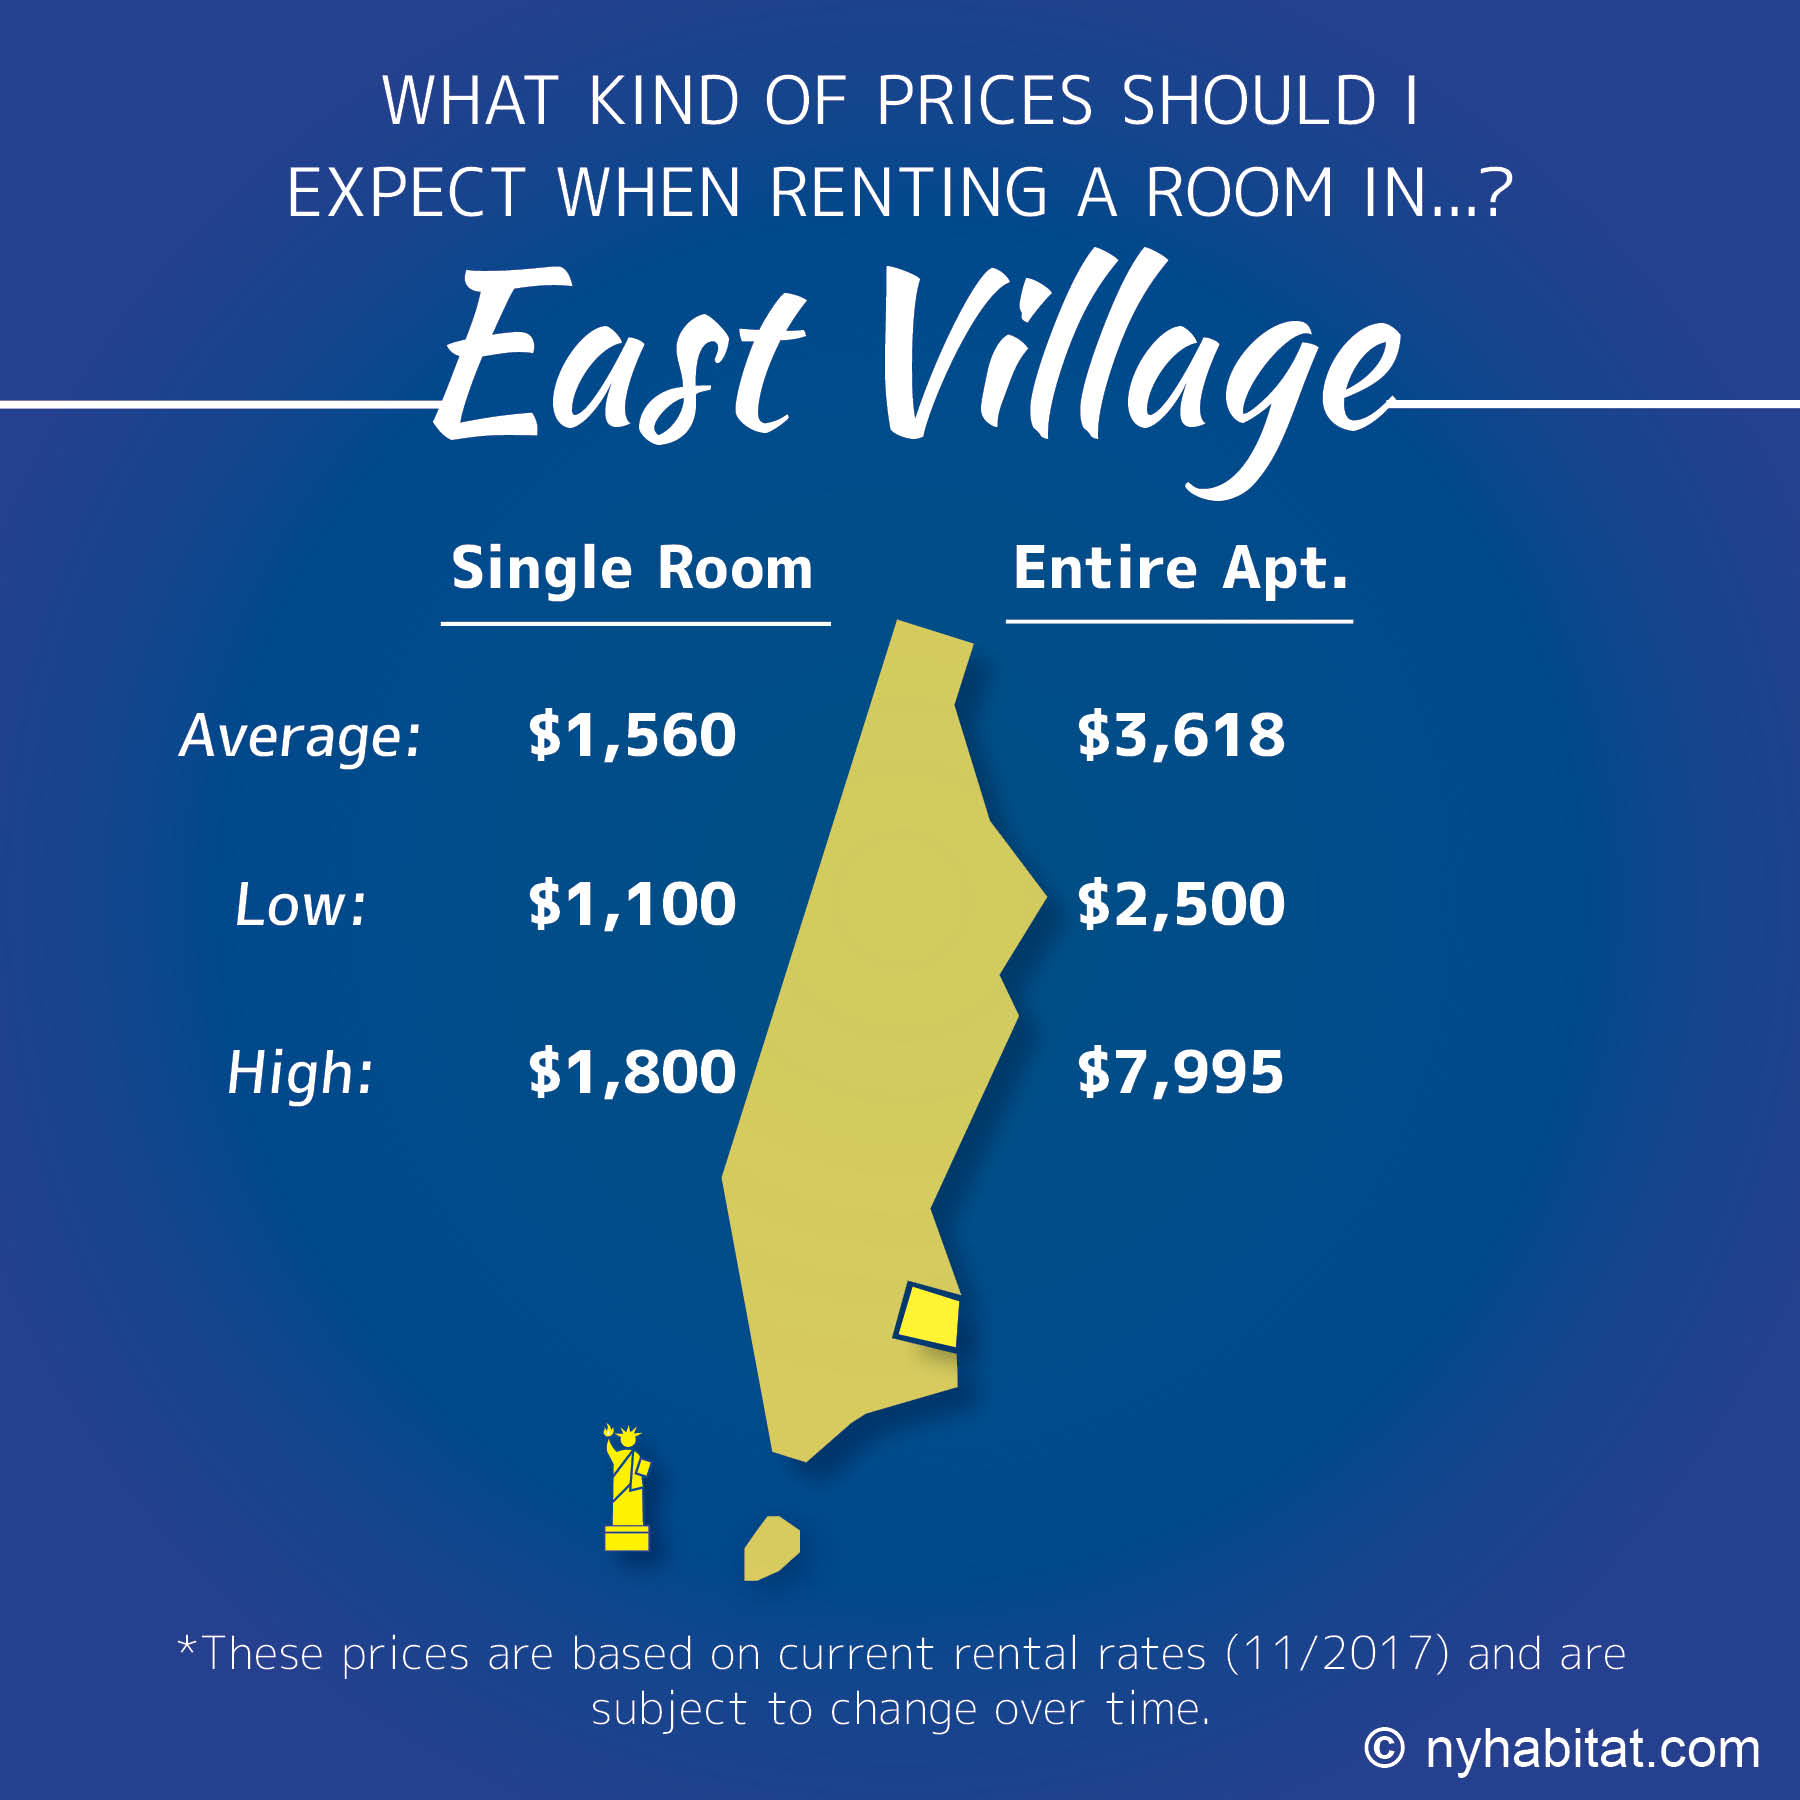 Infographic of room vs apartment prices in the East Village